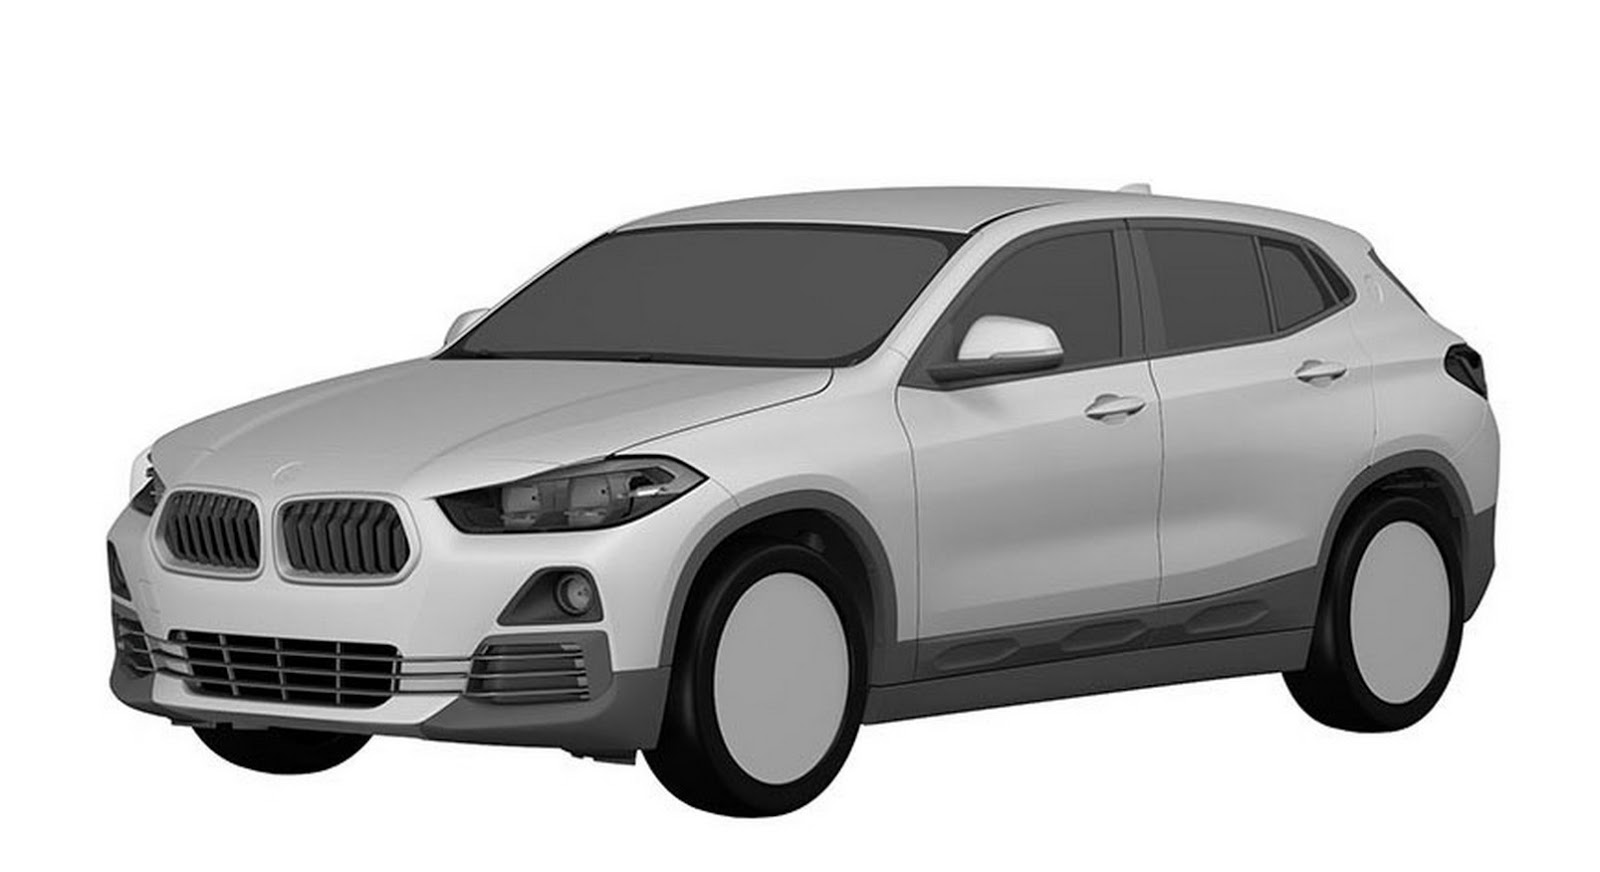 Probable BMW X2 Design Revealed in Patent Application